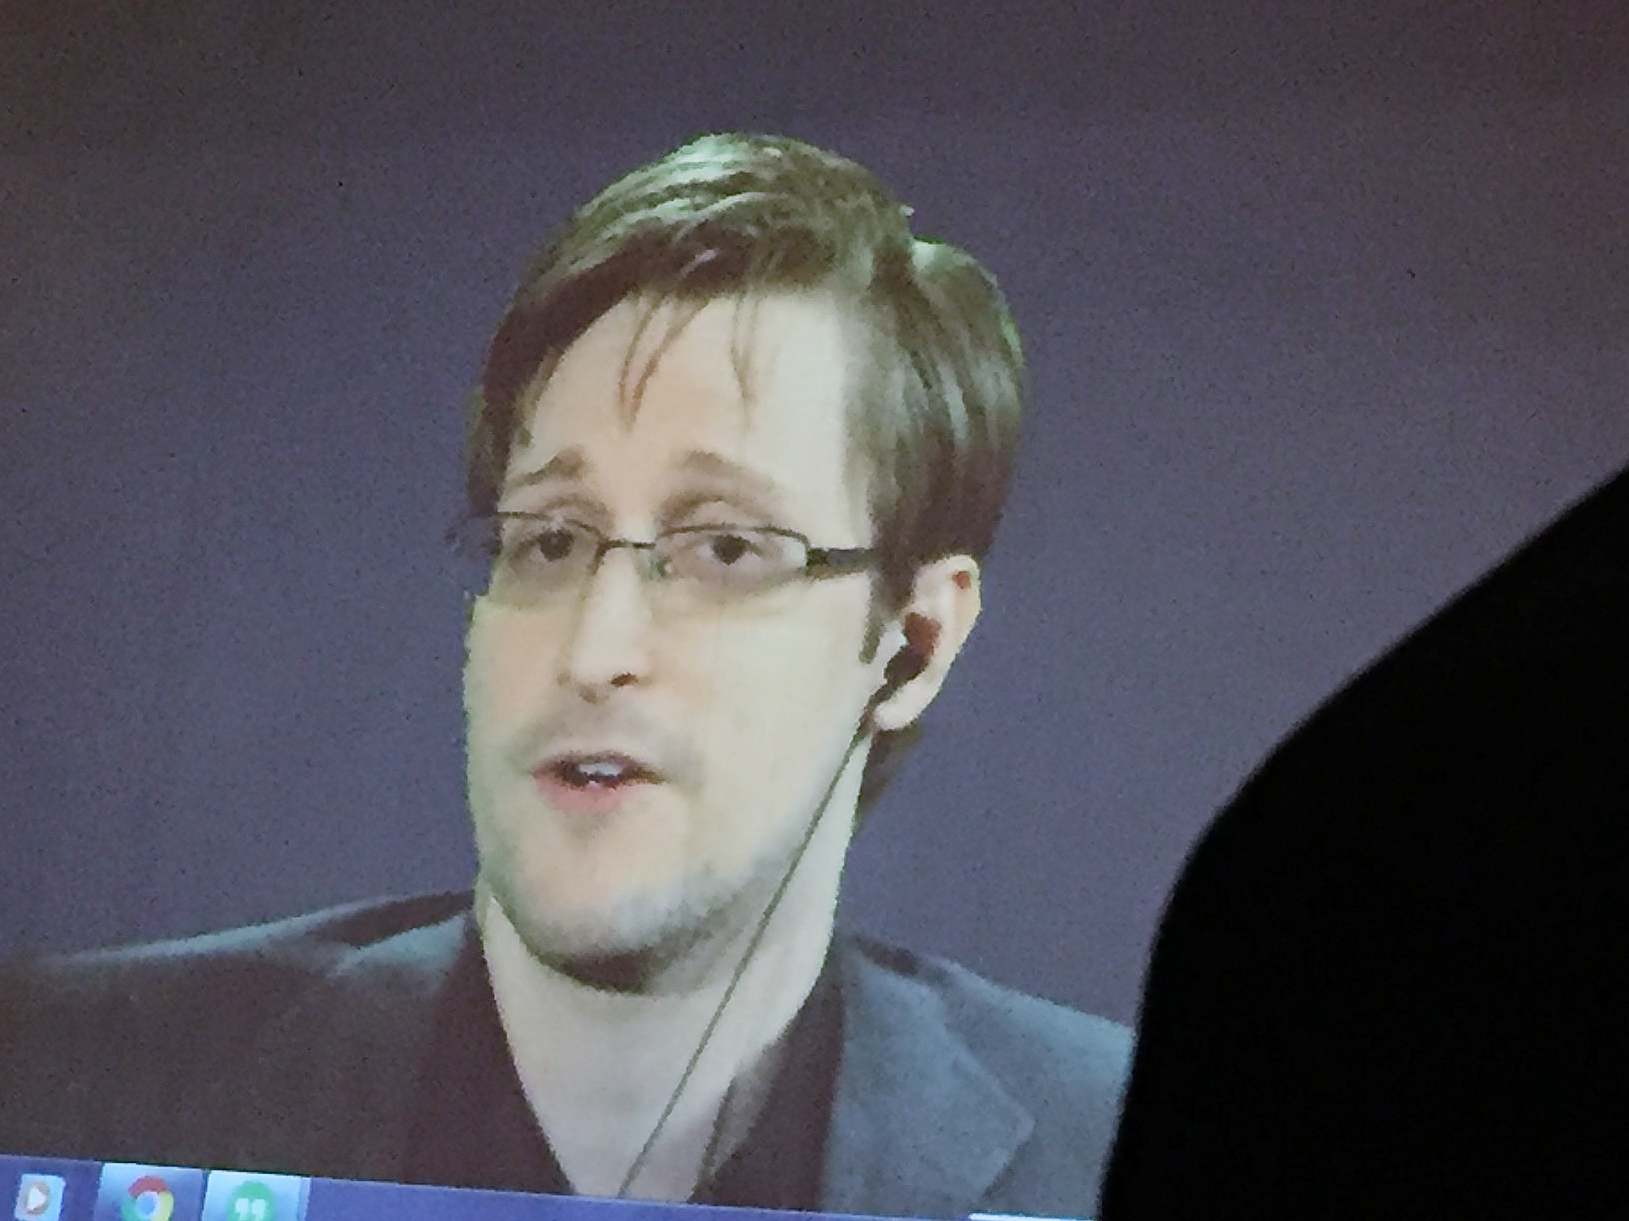 Justice Dept. sues for proceeds from Edward Snowden's book